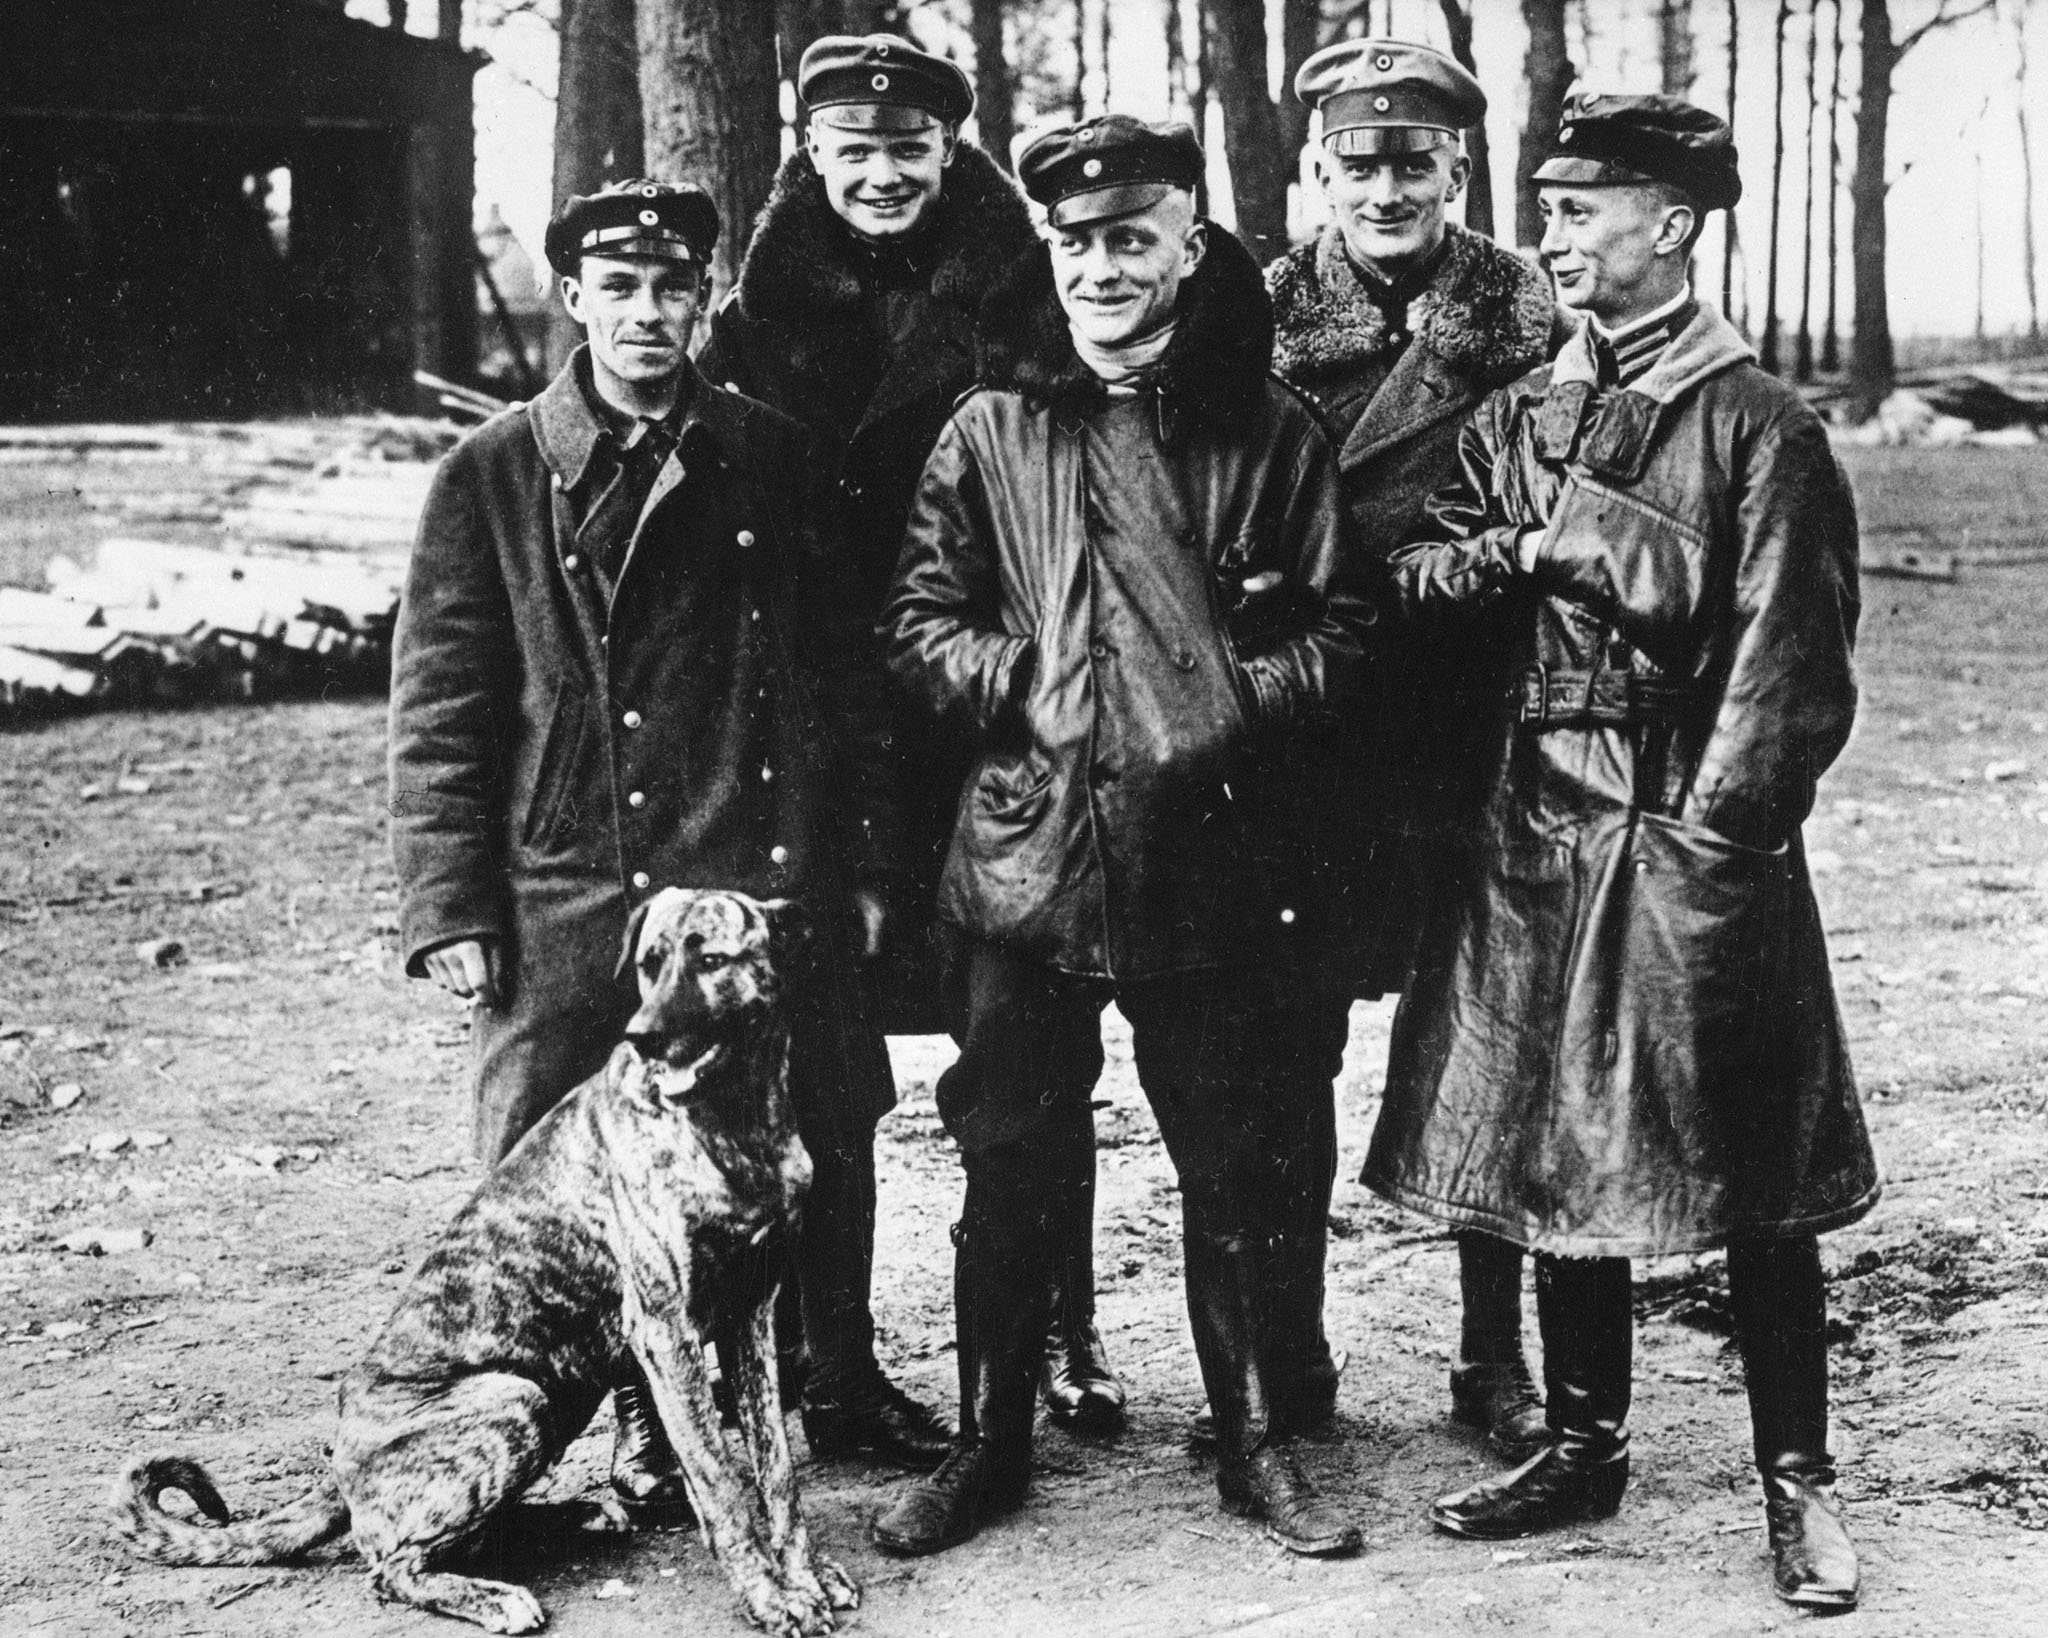 Manfred von Richthofen (centre), his dog and some members of the squadron Jasta 2.